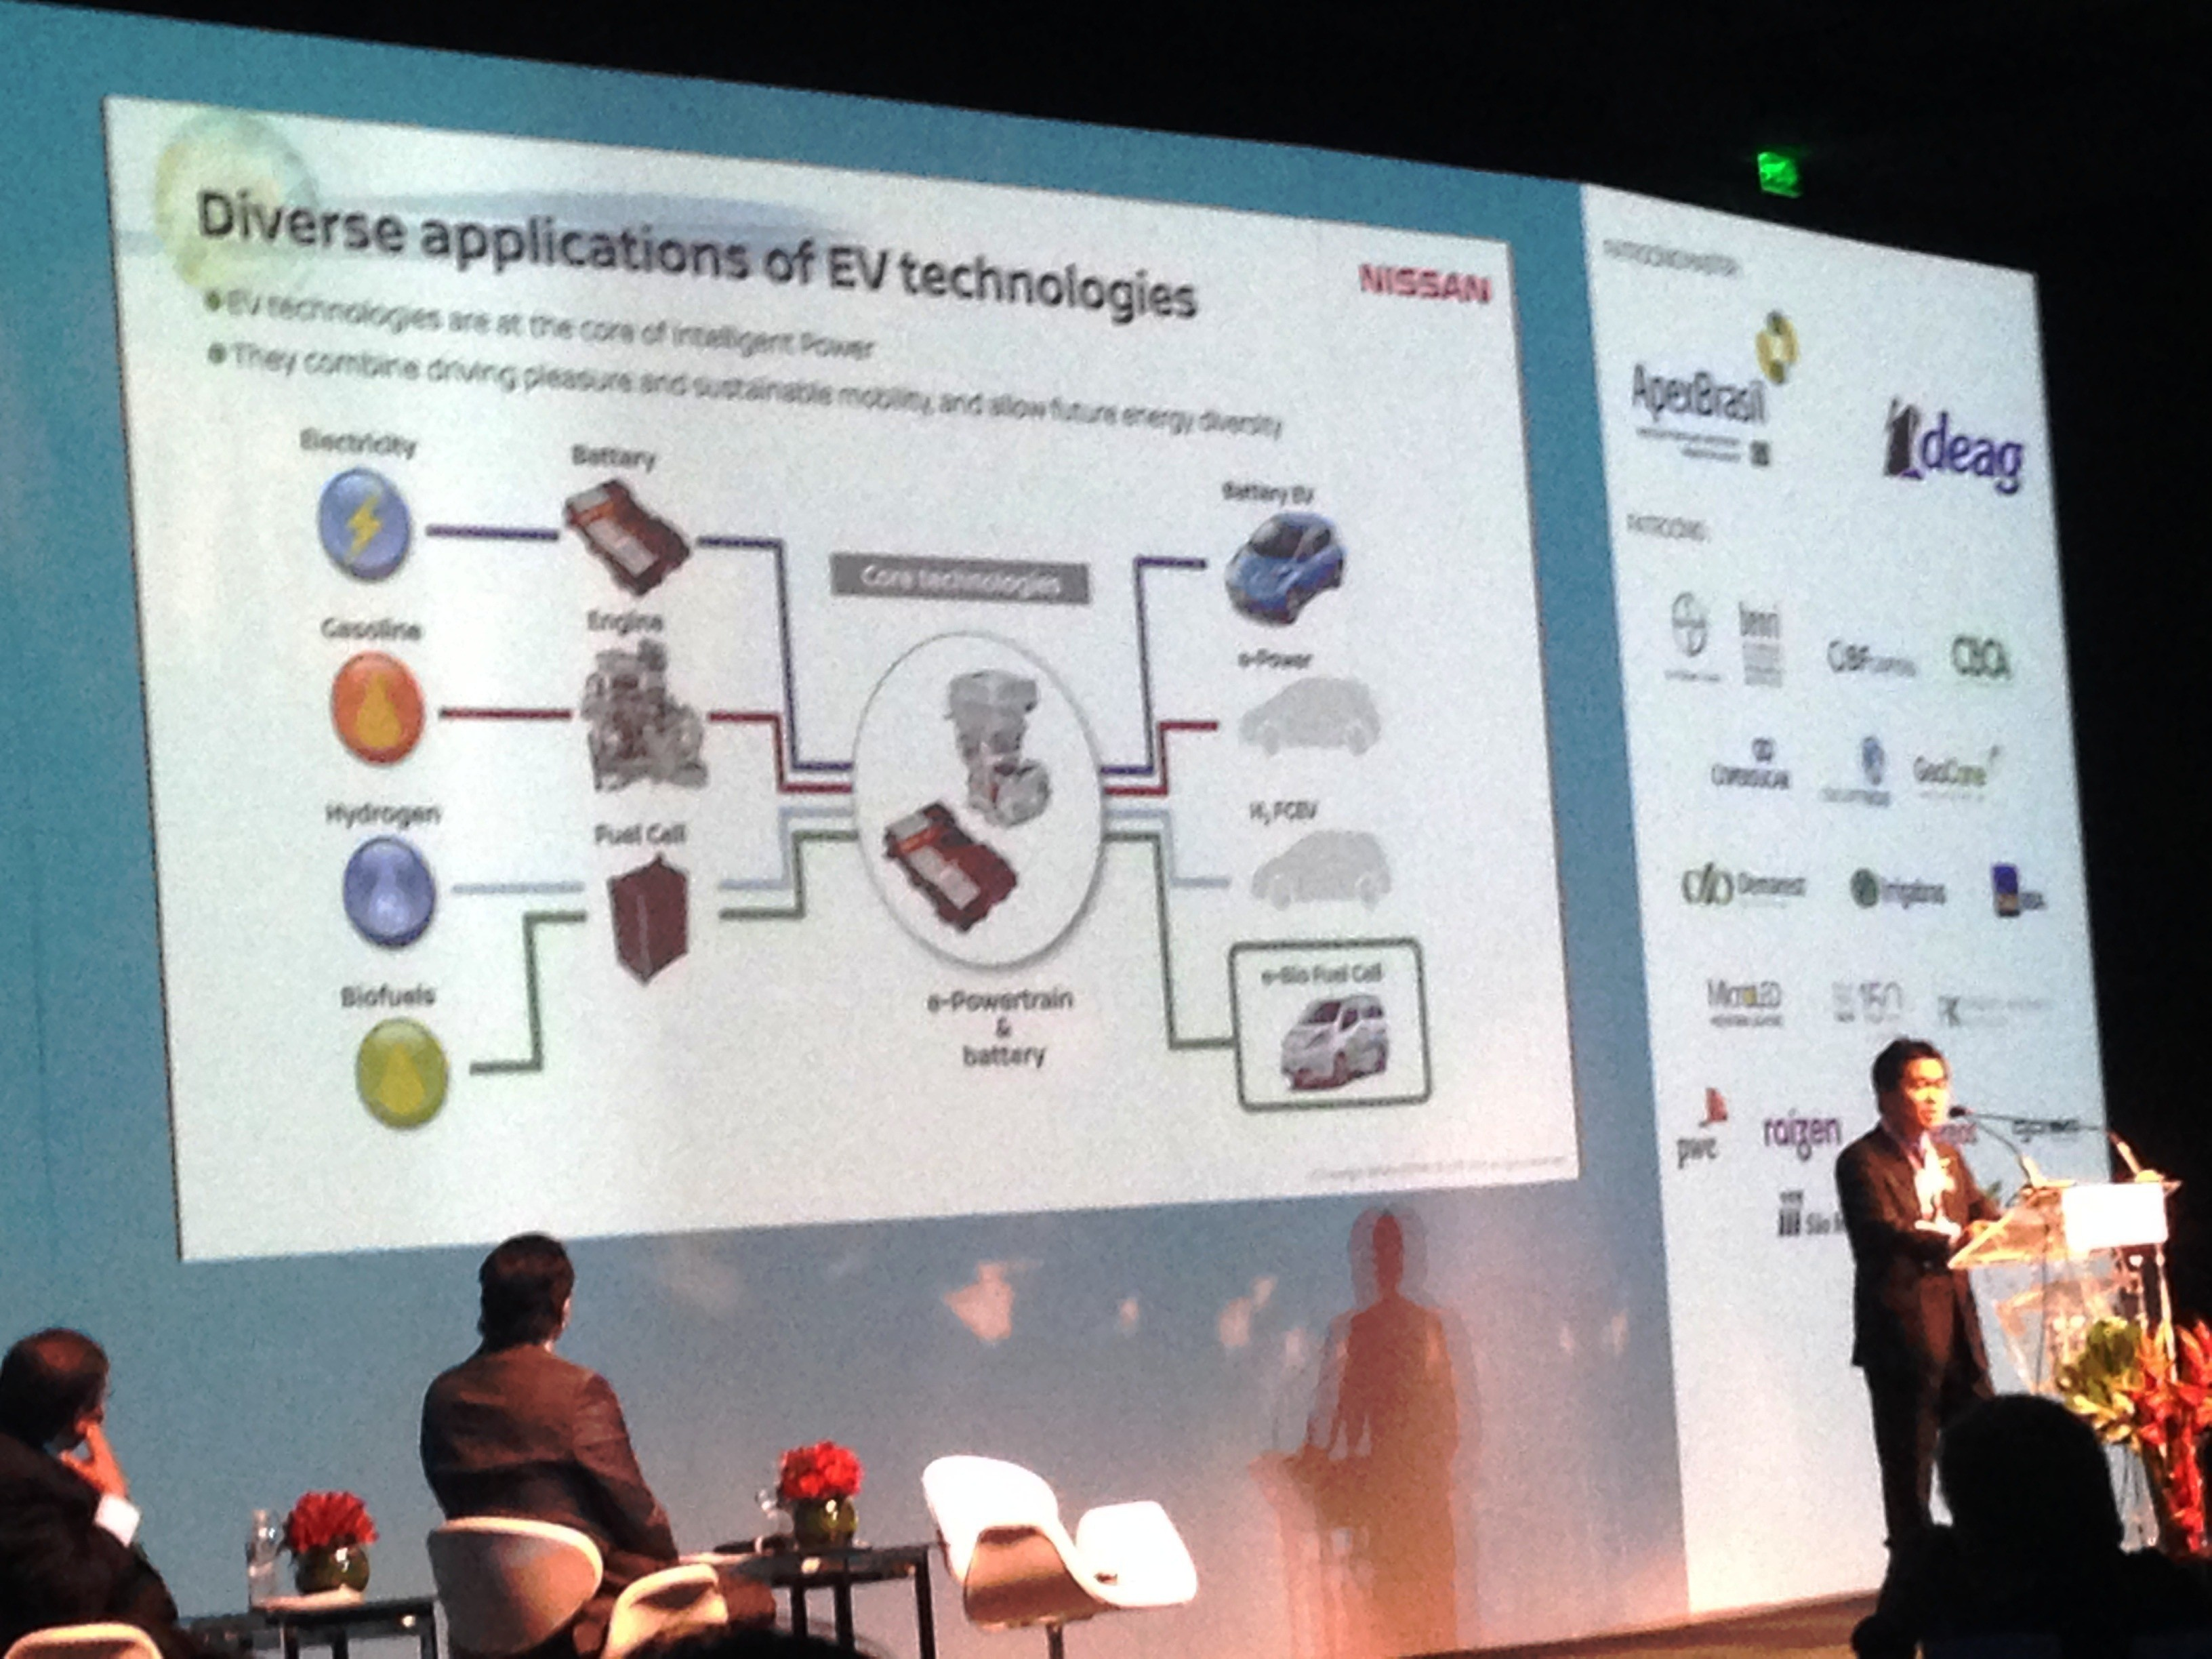 Nissan's Haruhito Mori explains the new ethanol-powered EV technology